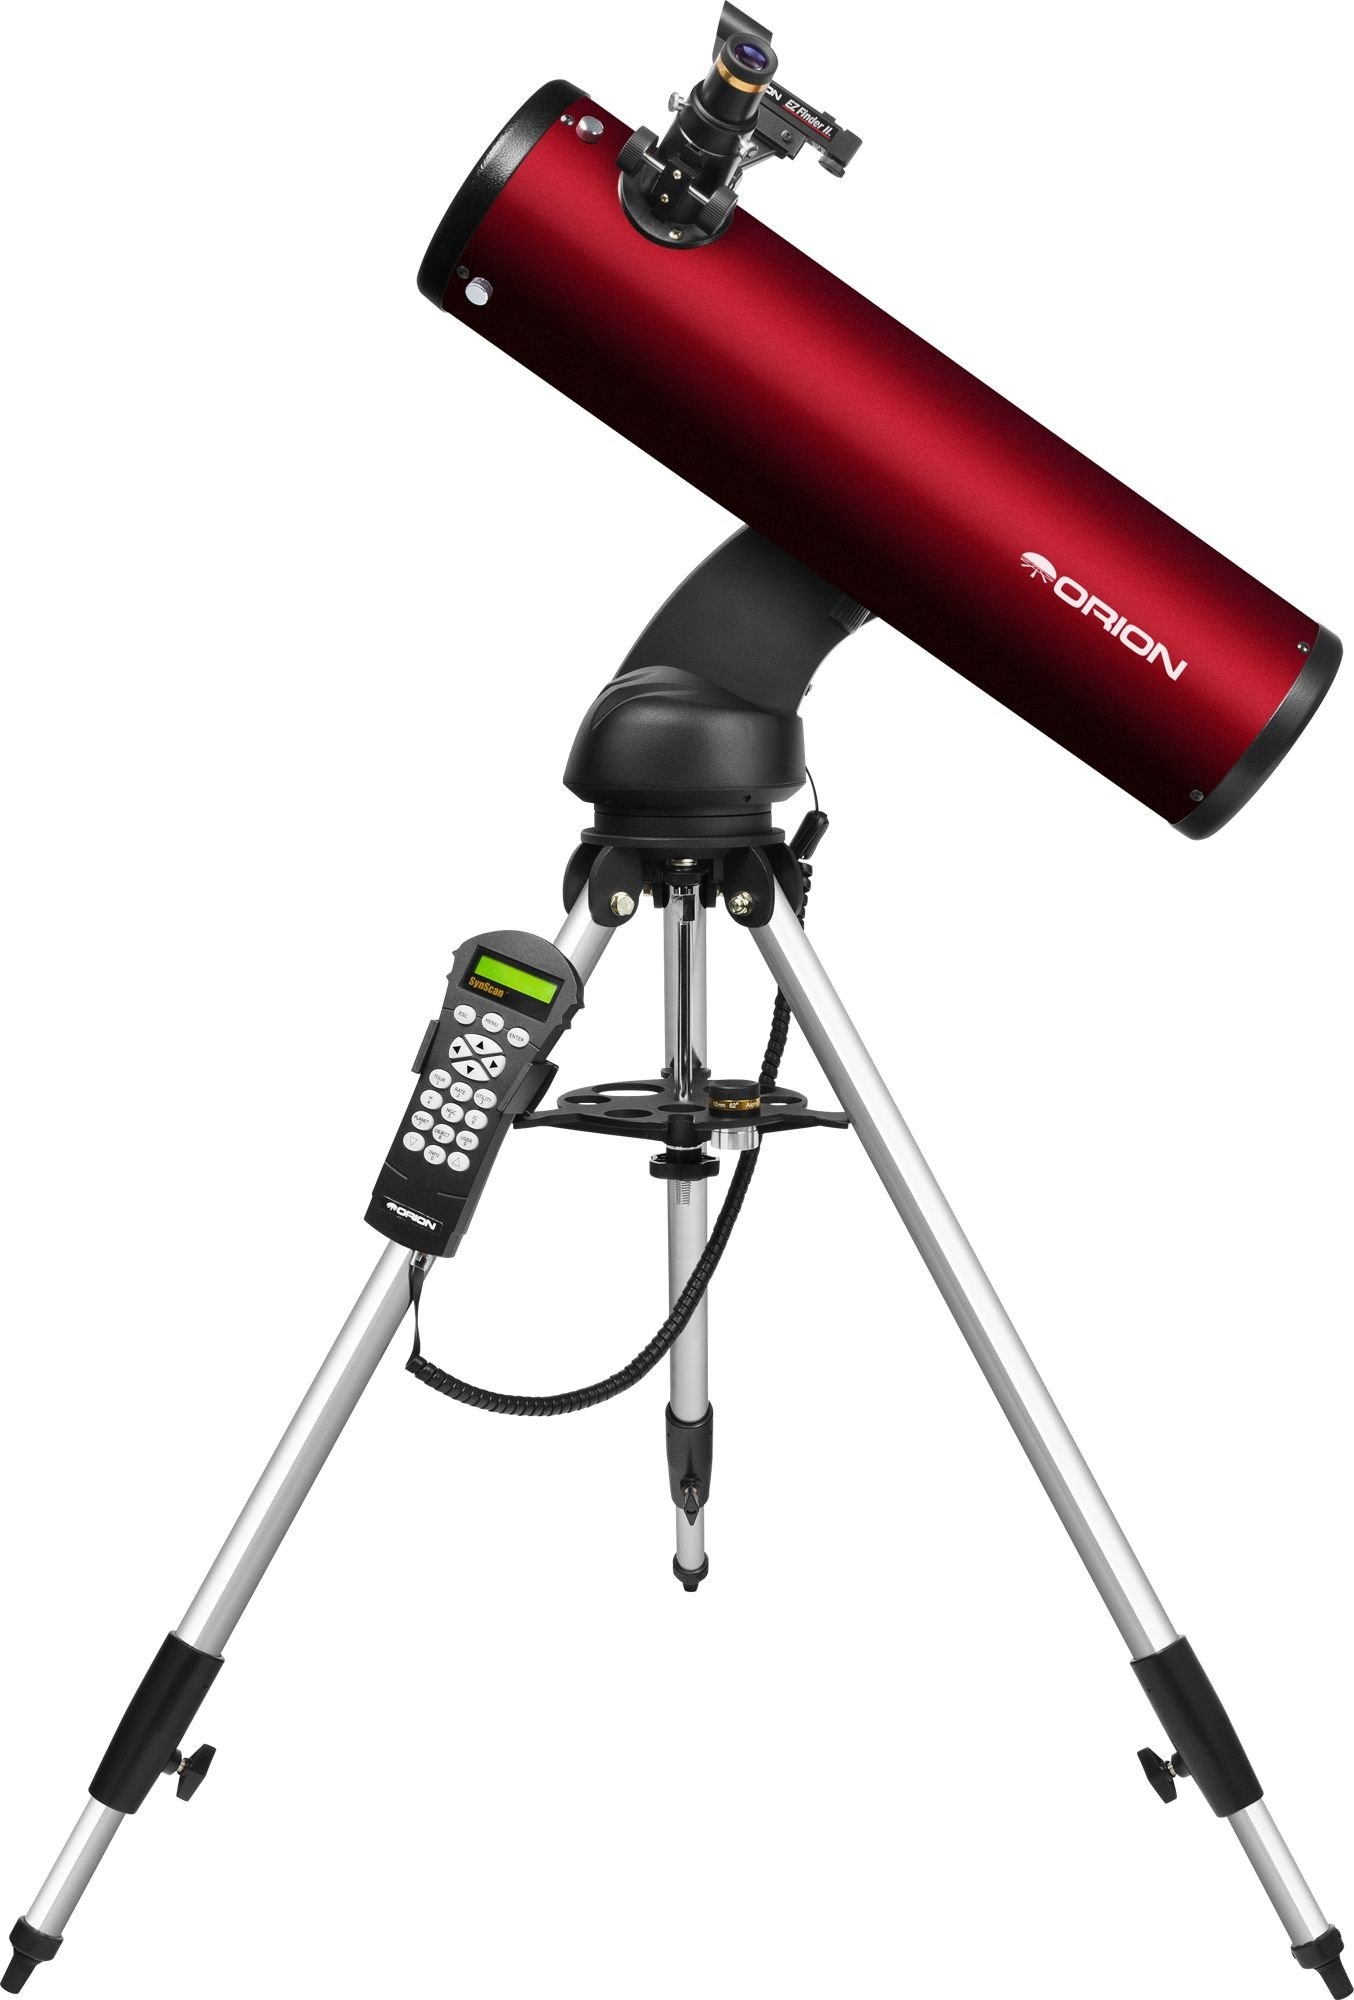 Orion 13160 StarSeeker IV 130mm GoTo Reflector Telescope (Burgundy) by Orion